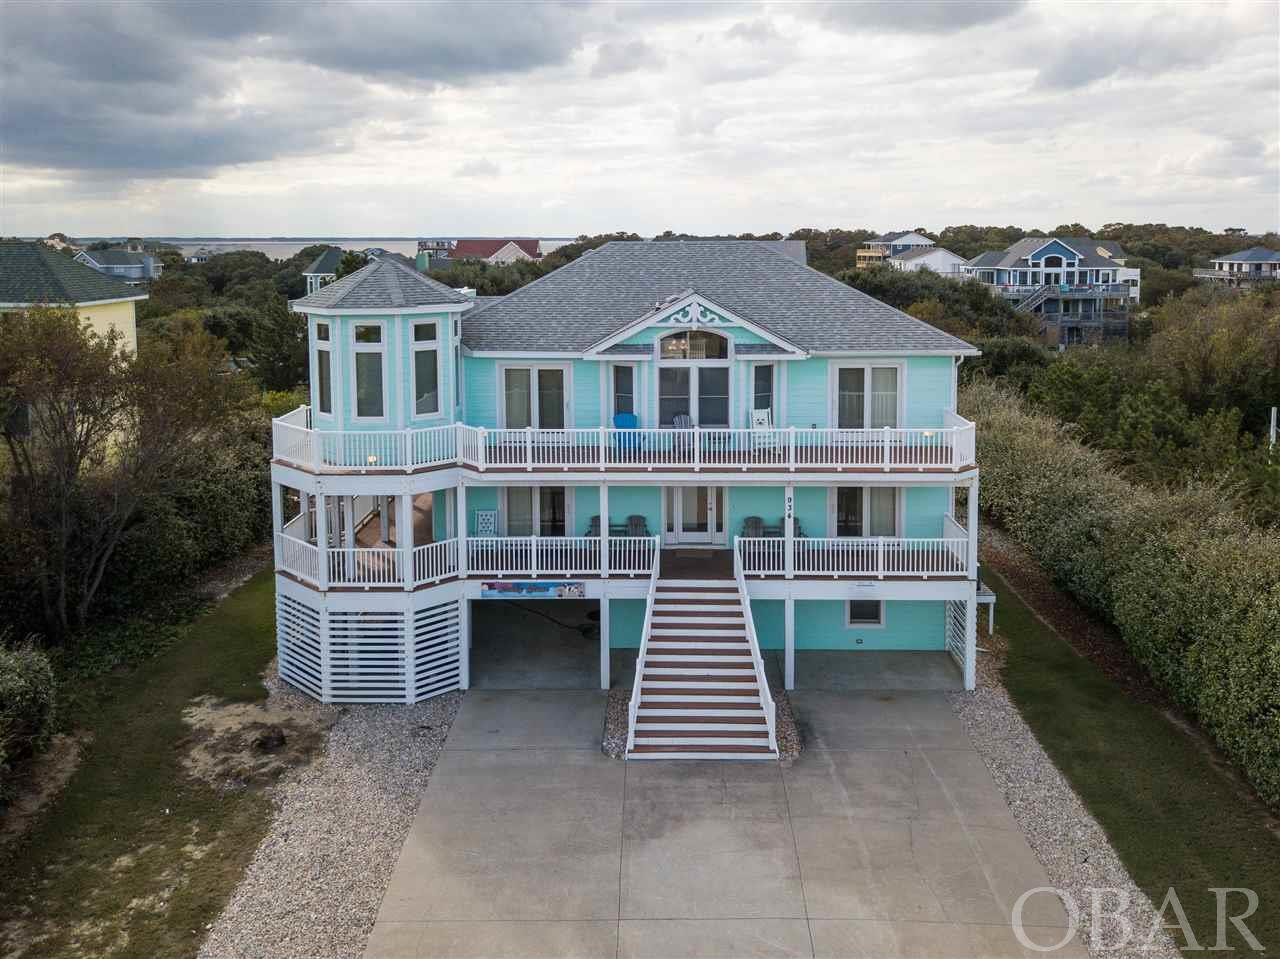 934 Whalehead Drive,Corolla,NC 27927,8 Bedrooms Bedrooms,6 BathroomsBathrooms,Residential,Whalehead Drive,102416